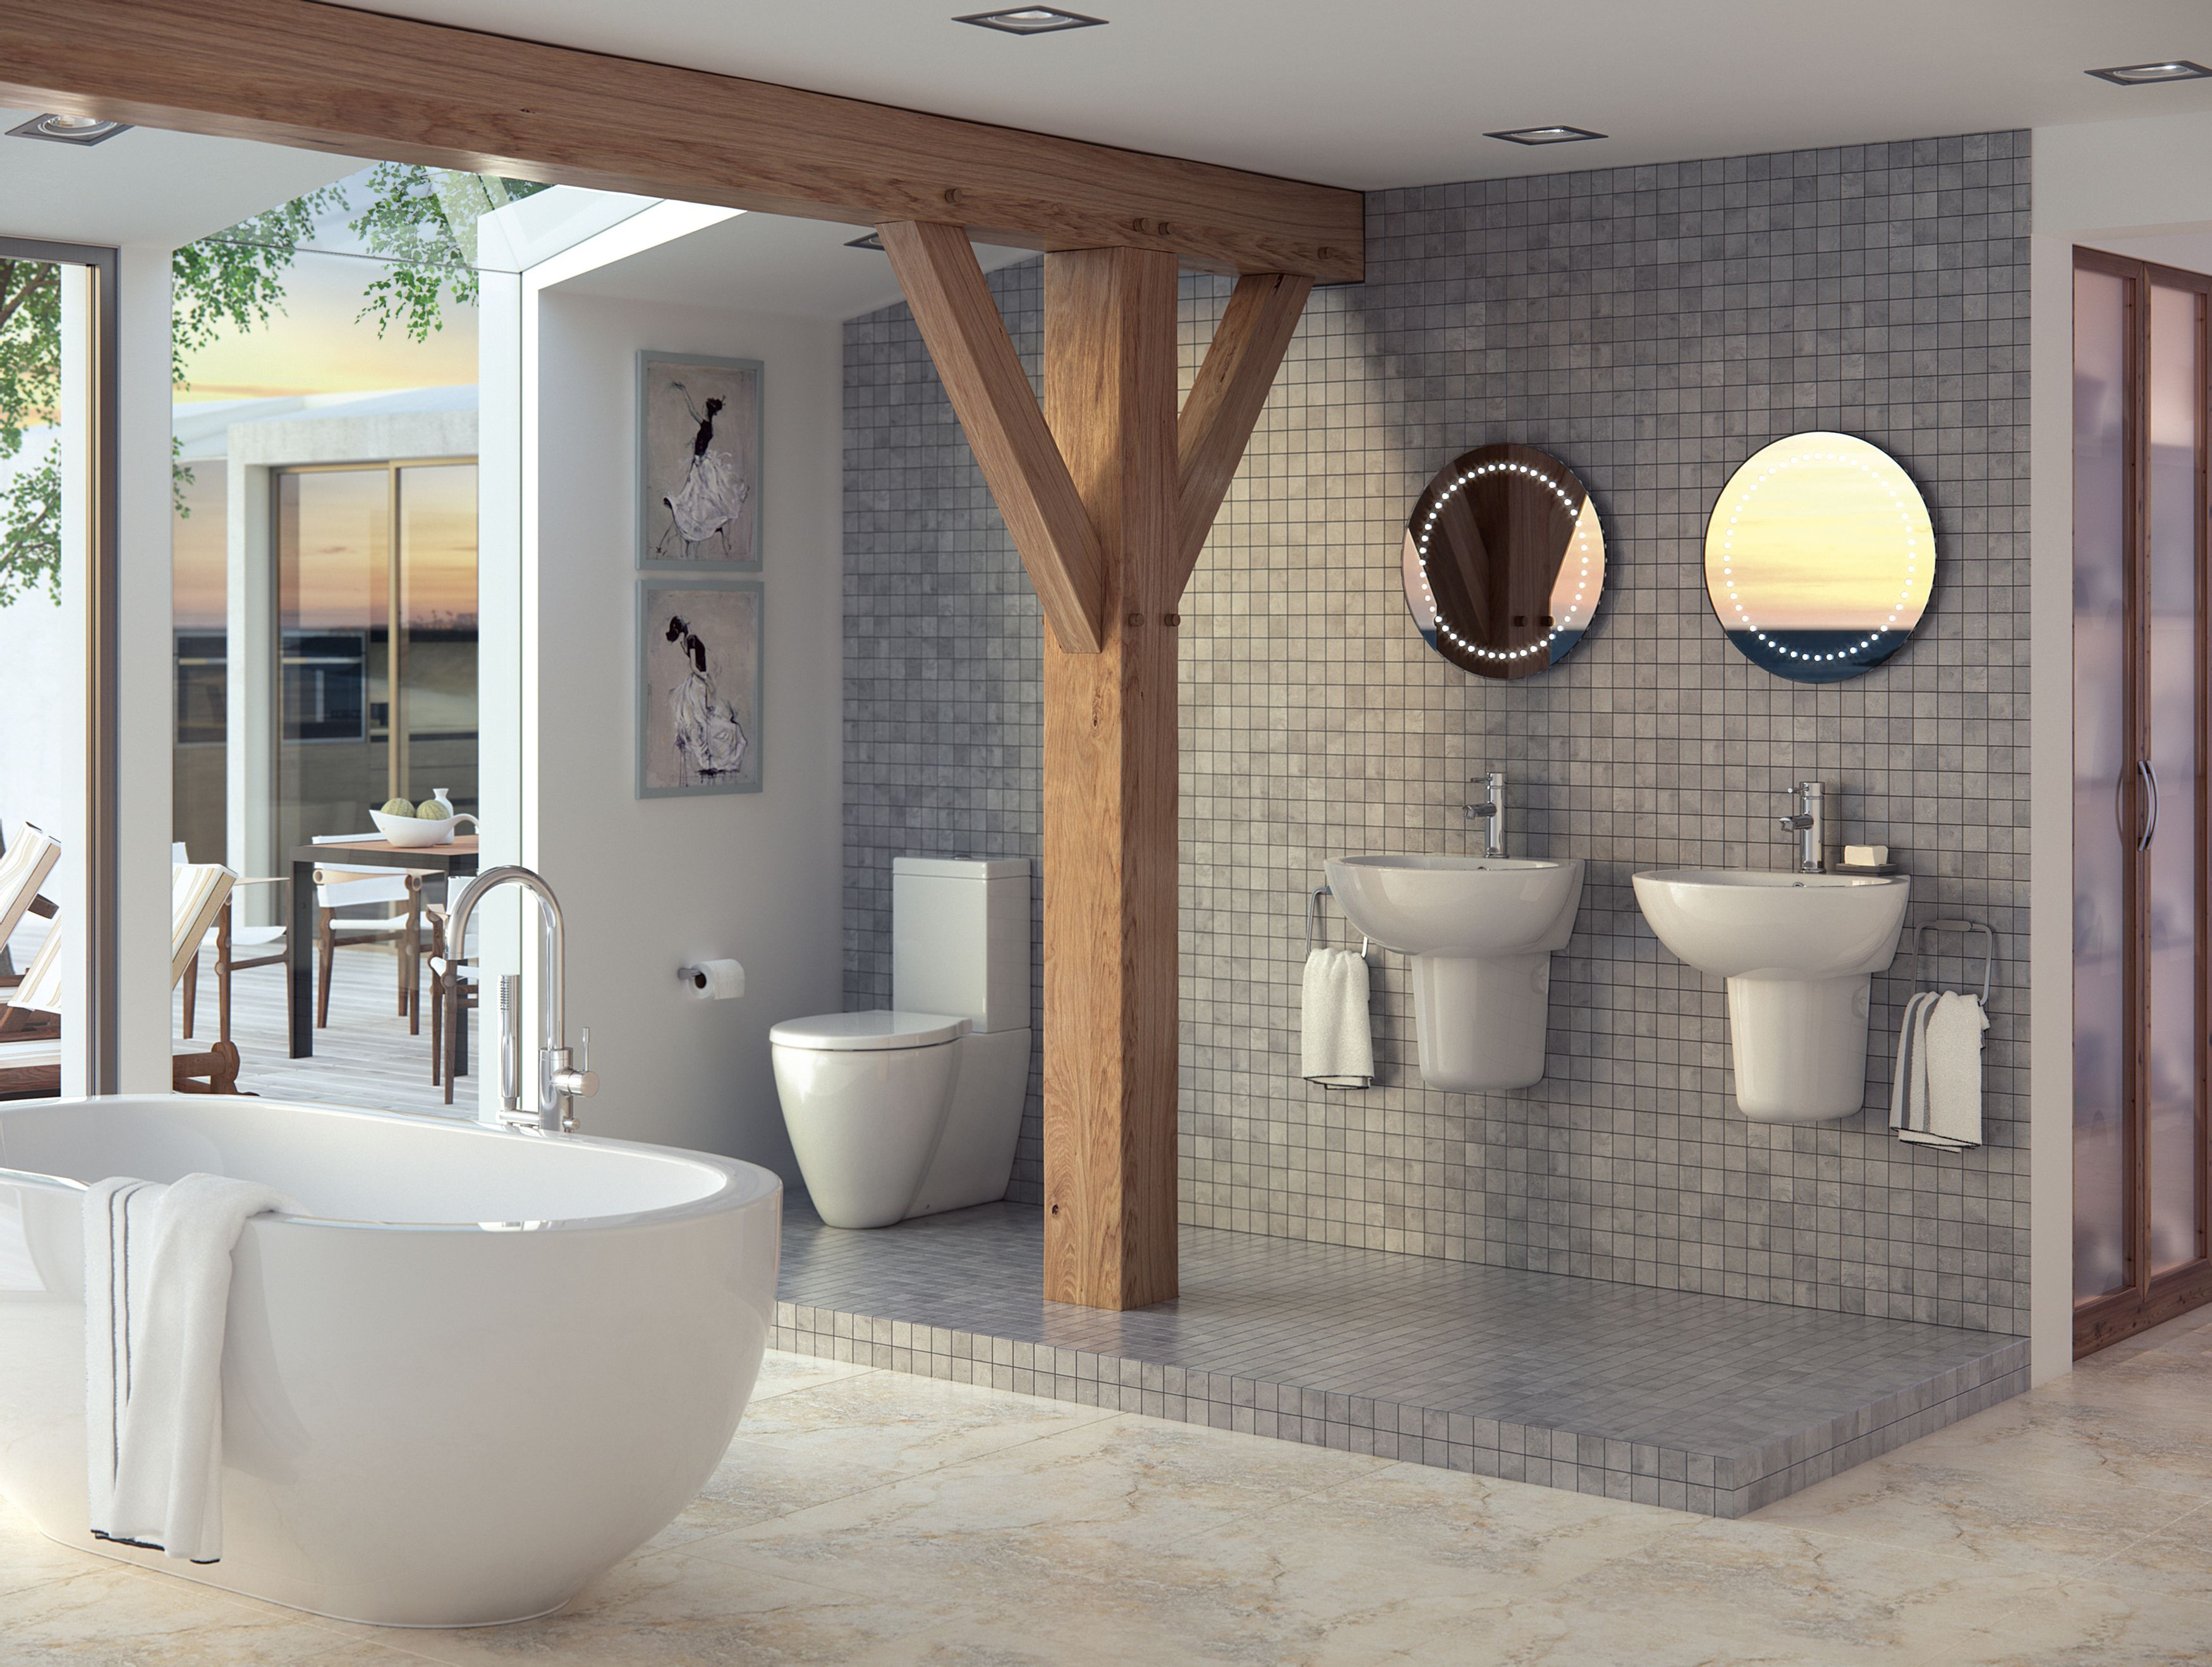 Best bathroom suite brands - Moods Is A Well Respected Brand In The World Of Bathroom Suites Known For Its